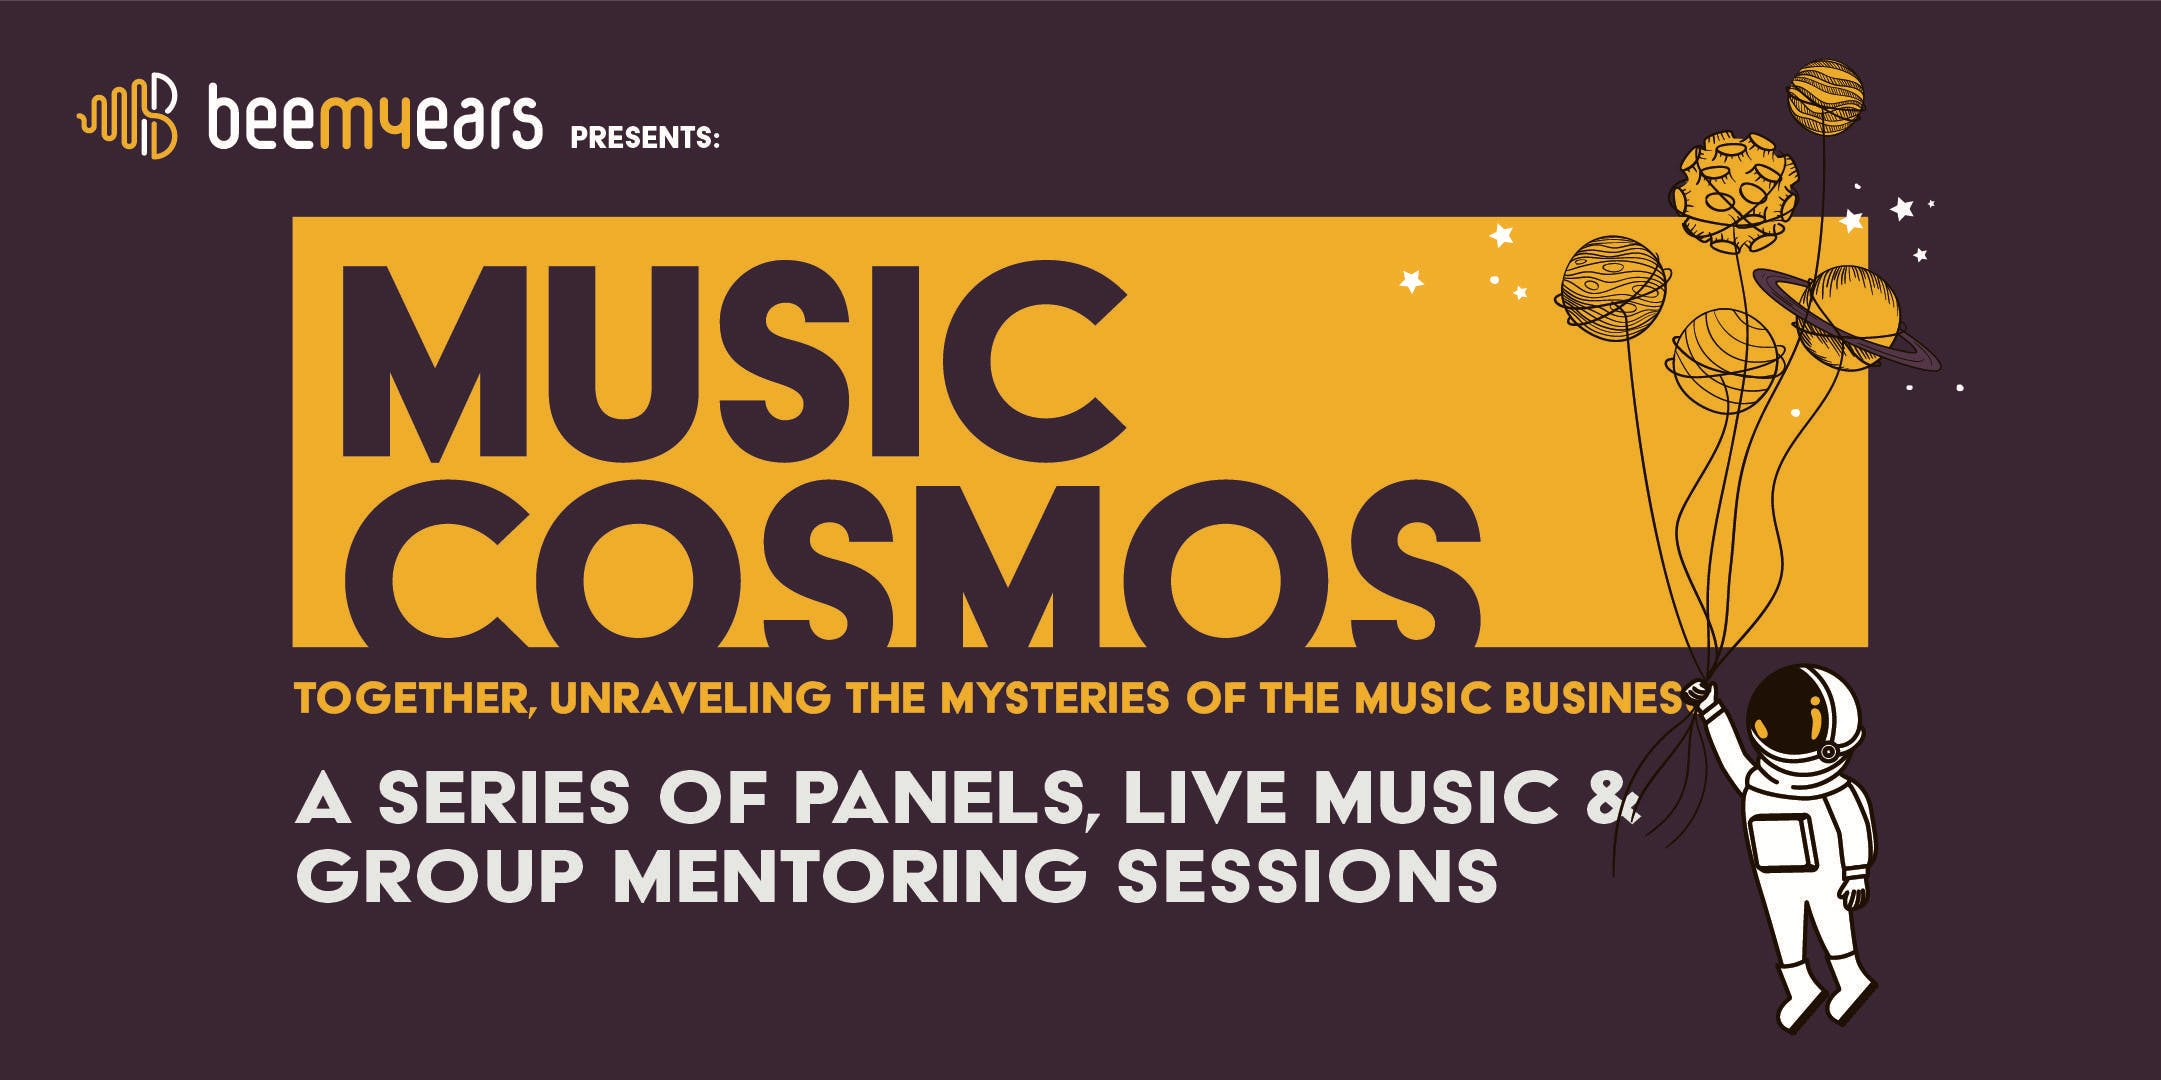 MUSIC COSMOS - Together, unraveling the mysteries of the music business.